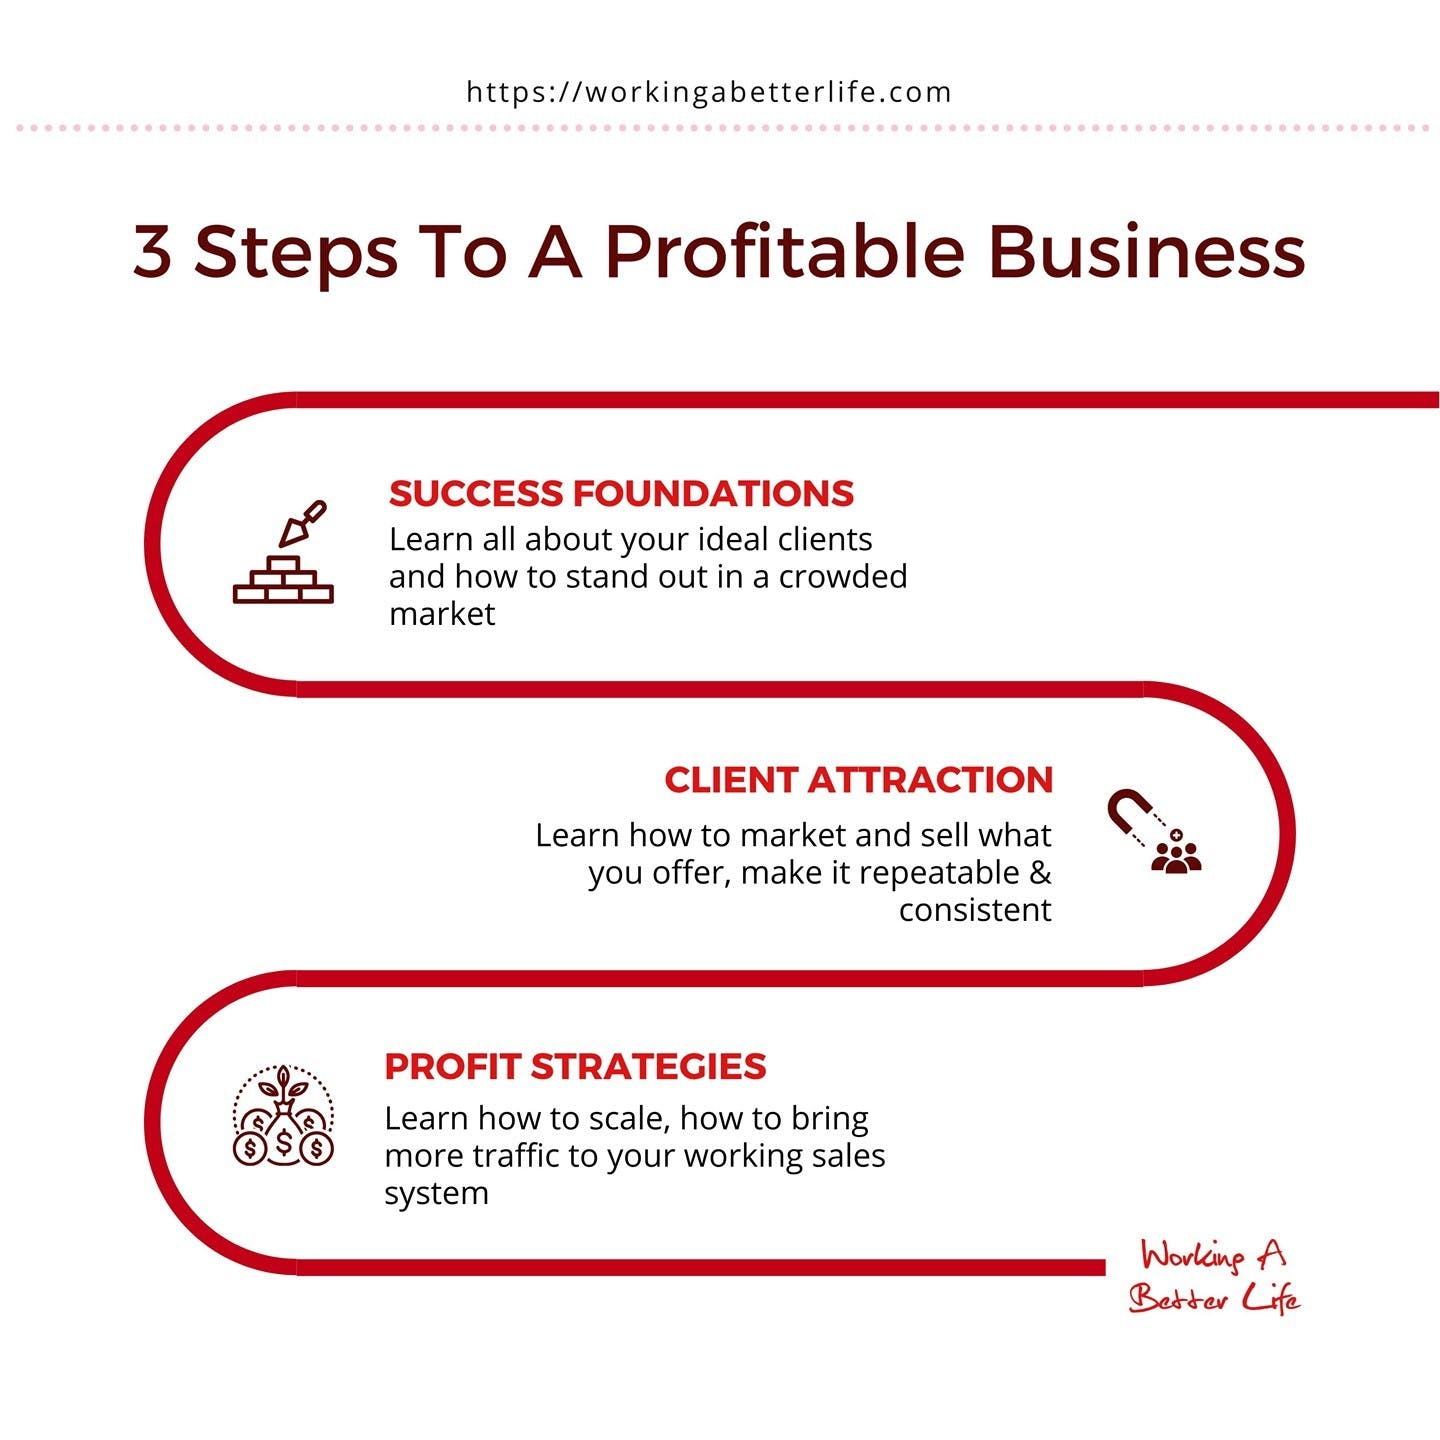 There are three steps to creating a sustainable and profitable business. Each one builds upon the next.    Most people try to skip the first one, the foundations, and go straight to attracting clients, then wonder why they aren't getting many sales.     If you don't know why your clients are buying, then it's so much harder to successfully sell.    Too many businesses have the attitude that you shouldn't have to sell, that people will just buy. It rarely works that way because people aren't buying what you sell, they are buying what your products enable.     And there are always alternatives to what you sell, not just your competition, but other types of products, other actions.    Your job is to show people why what you sell is the best way to achieve or get what they want over and above all the other alternatives.    Save this as a reminder, and if you want help attracting more clients DM me.